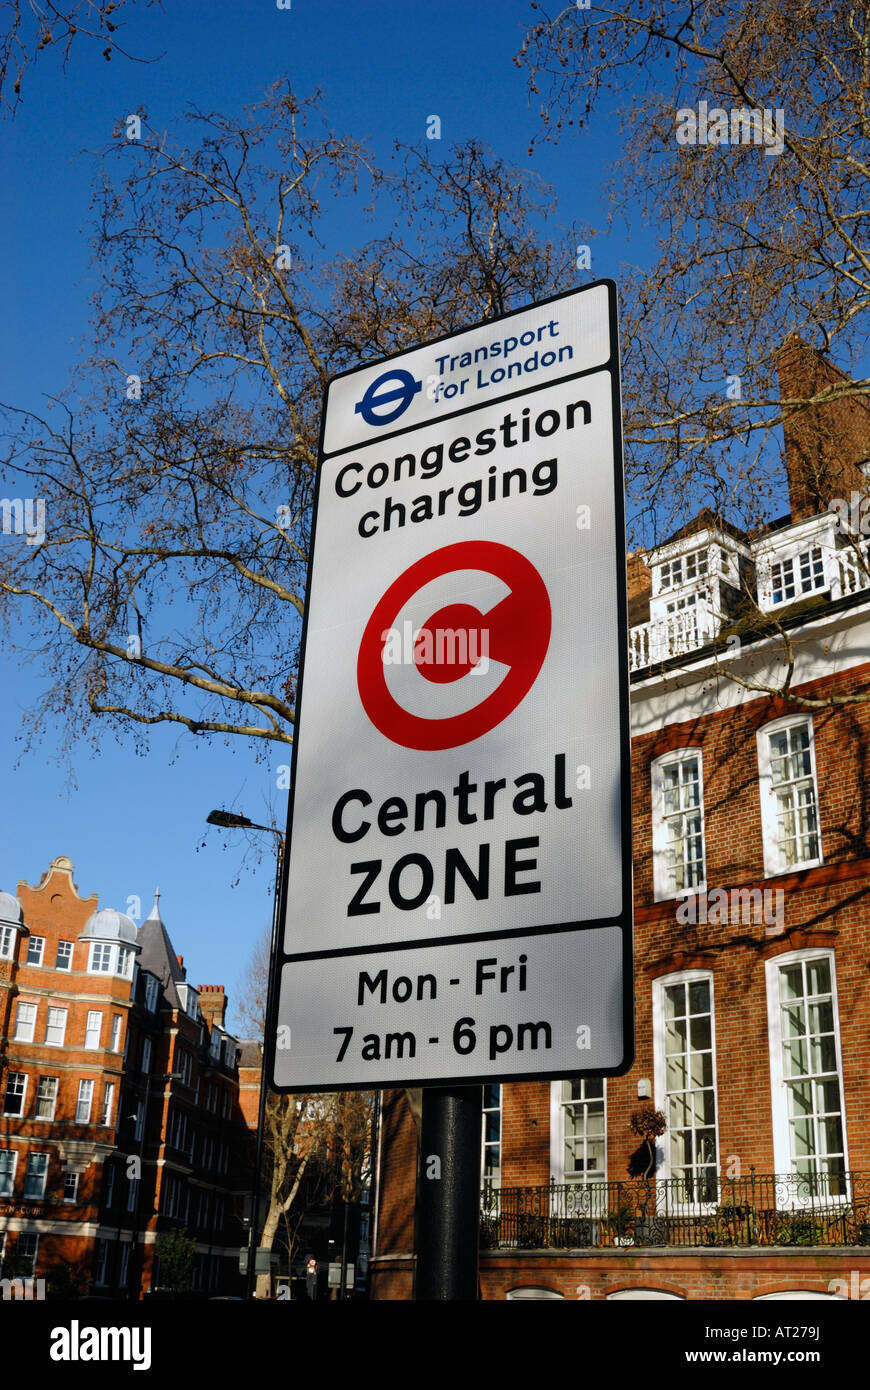 Congestion Charging Central Zone London - Stock Image